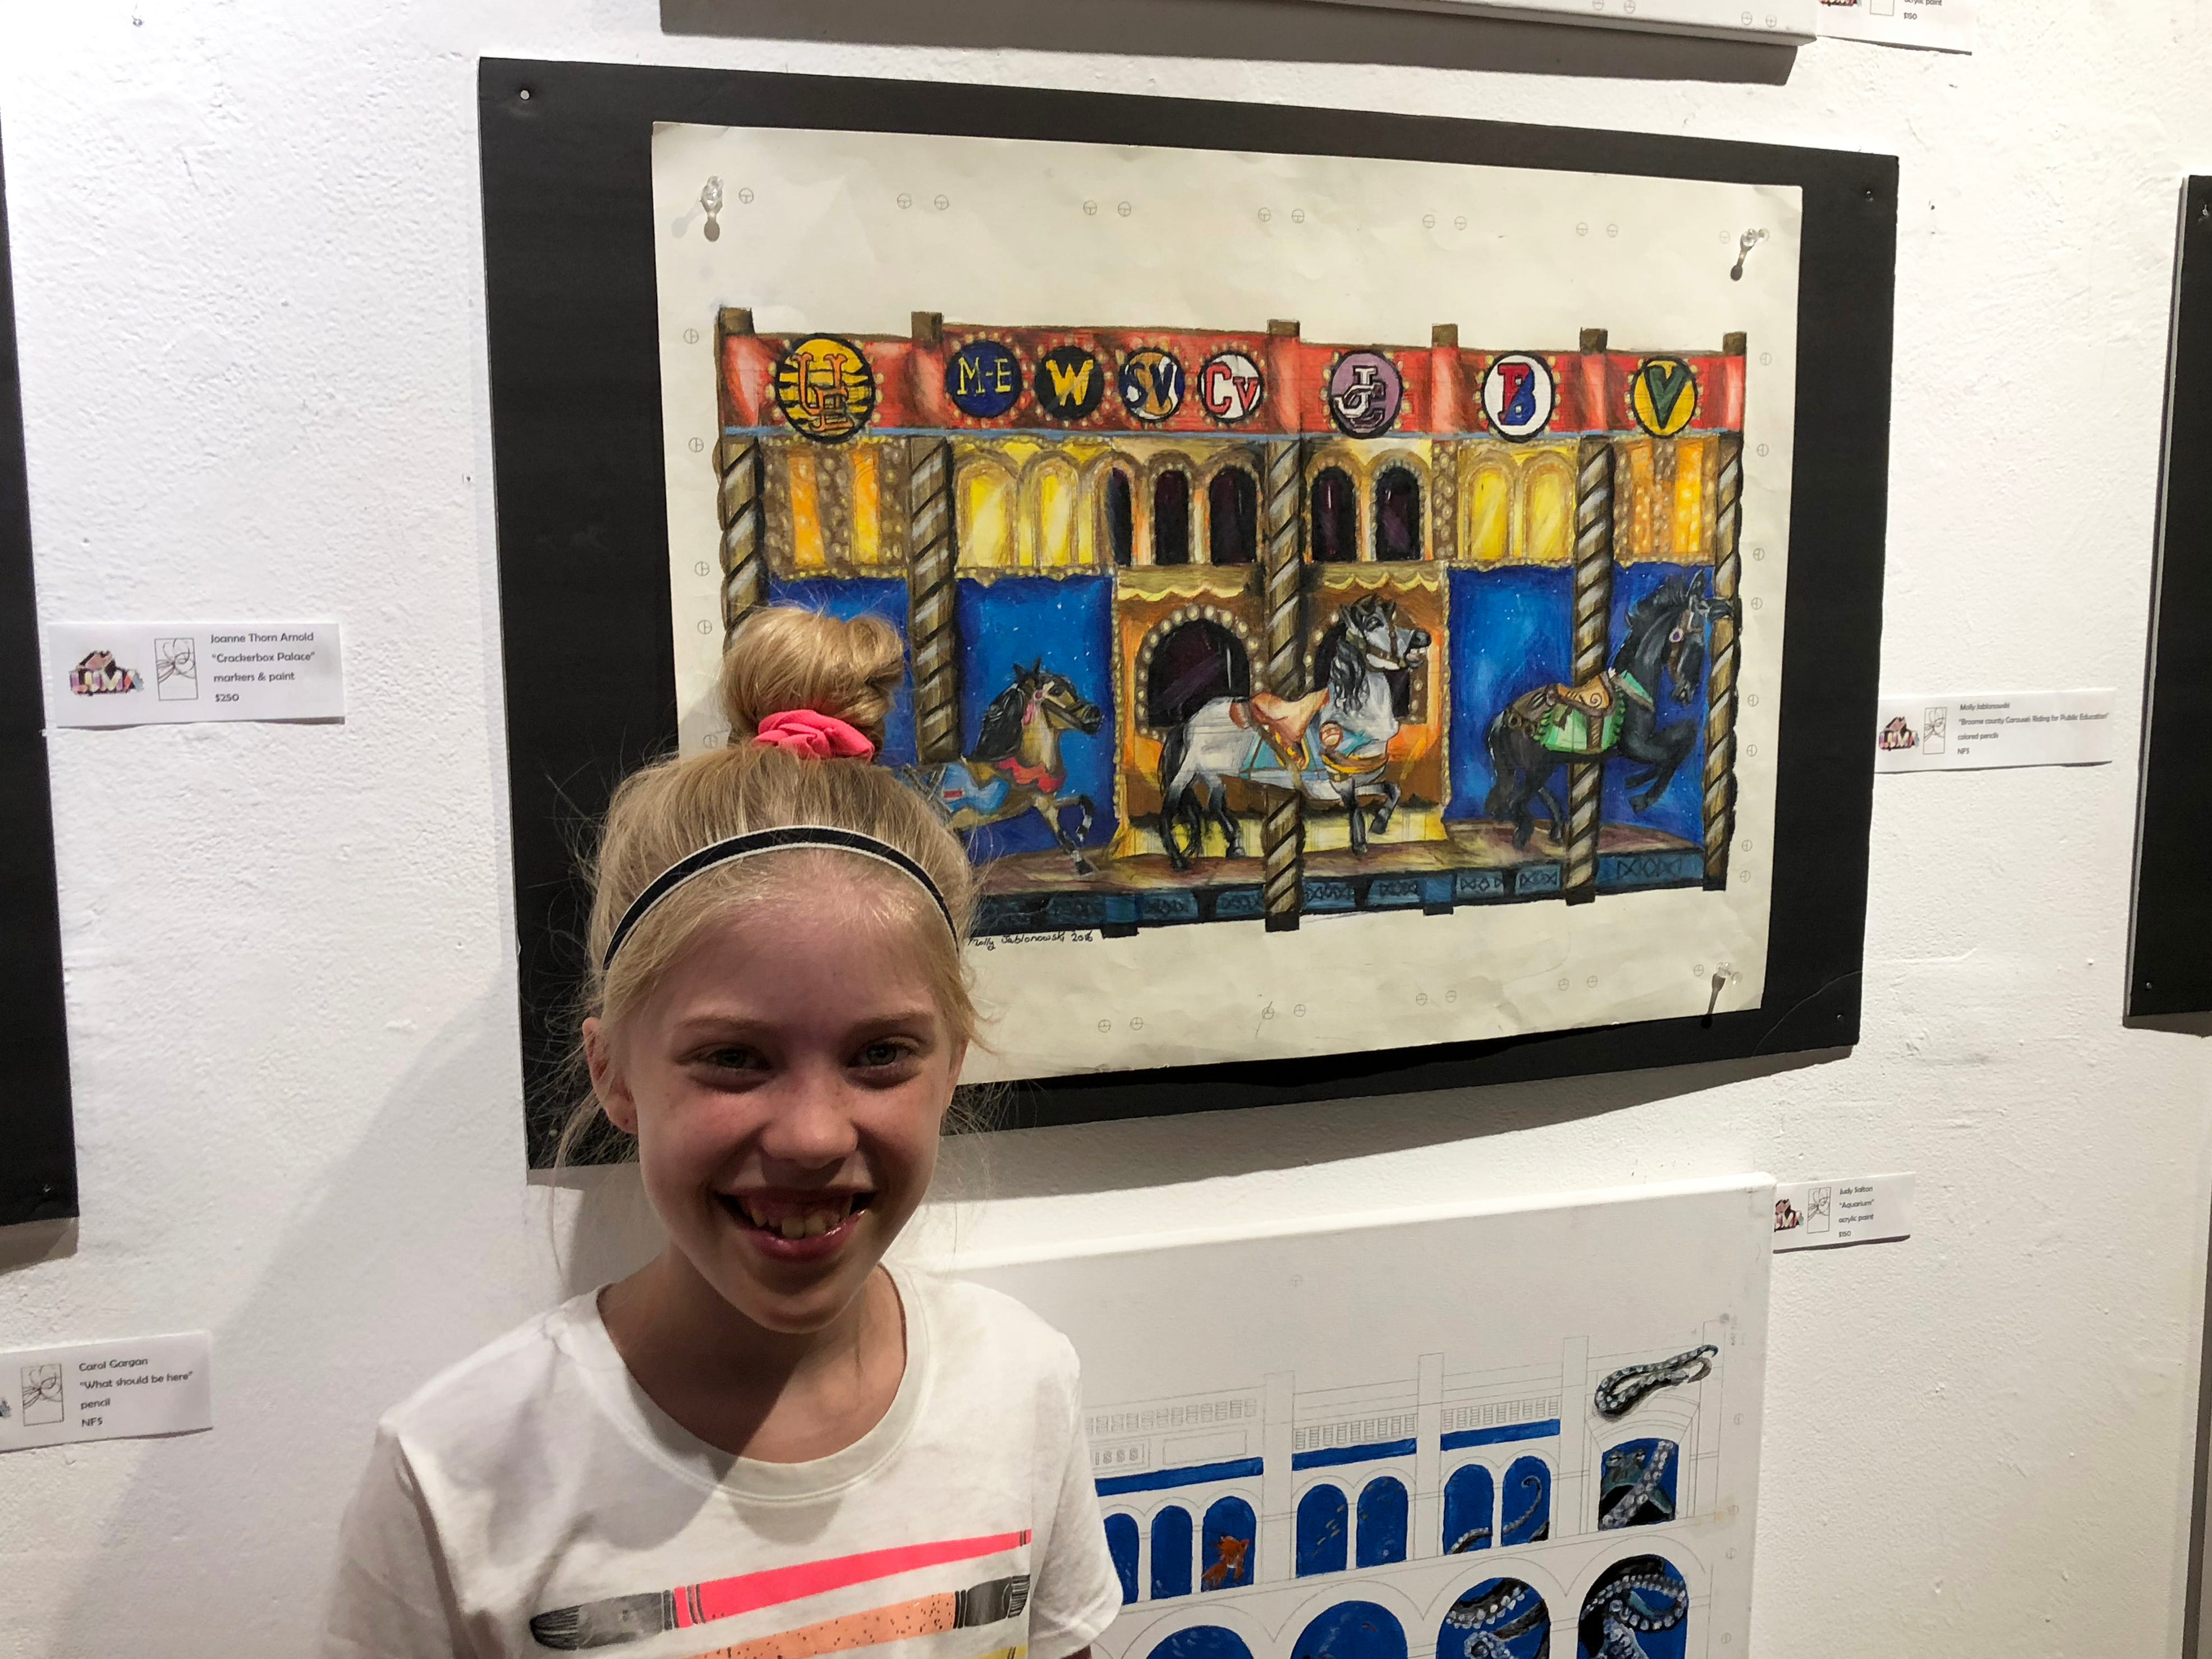 Johnson City Central School District seventh grader Molly Jablonowski, 12, was one of several local artists chosen to have their work blown up on the side of Atomic Tom's for the LUMA Projection Arts Festival Sept. 7-8.